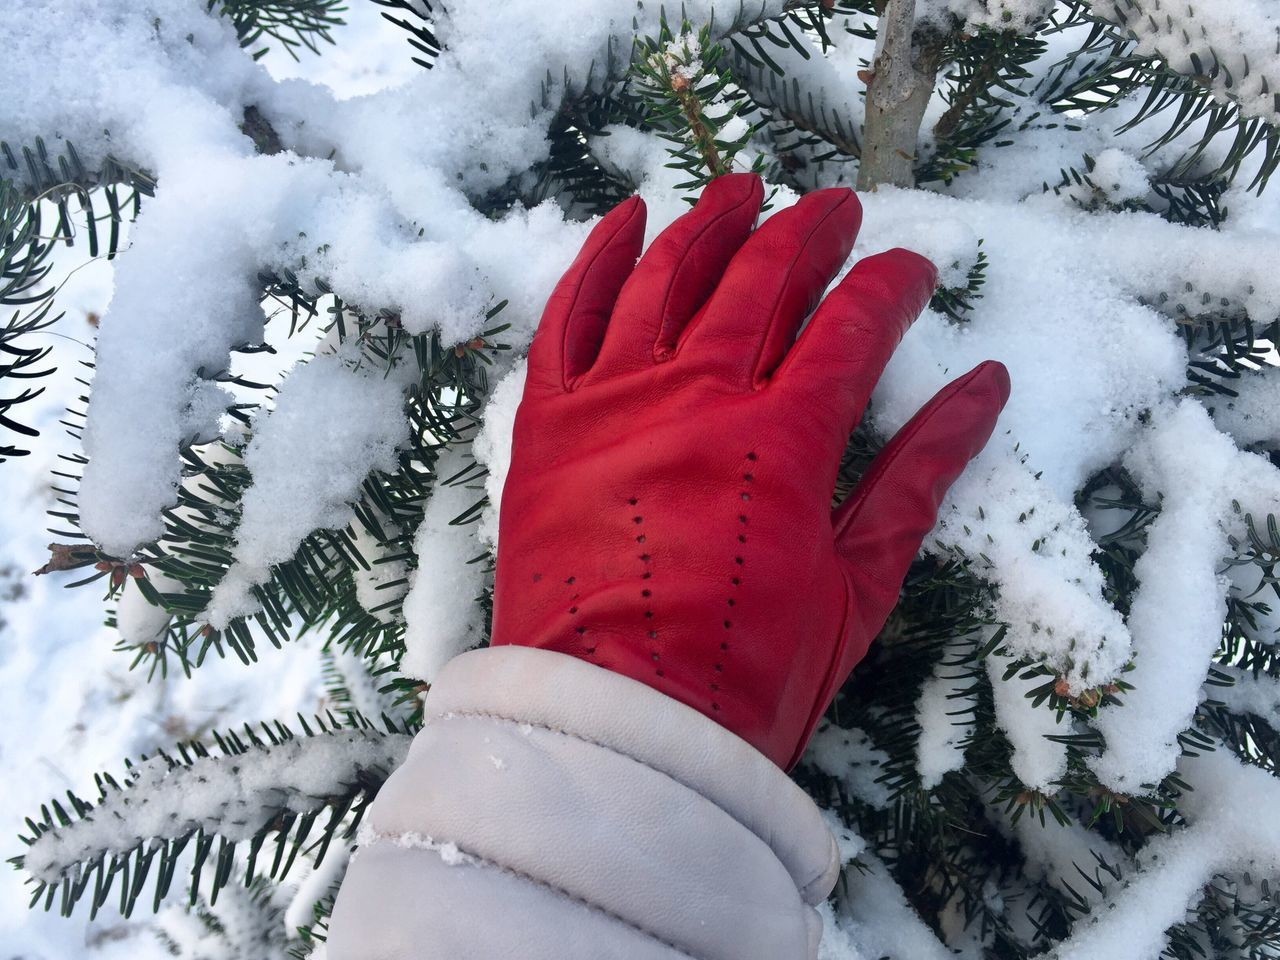 Woman hand wearing red glove touching pine cone tree covered in snow Winter Snow Cold Temperature Red Celebration One Person Close-up Tree Day Outdoors Women Nature Human Body Part Warm Clothing Christmas Decoration Human Hand Touch Glove Cold Snow Winter Needles Evergreen Tree